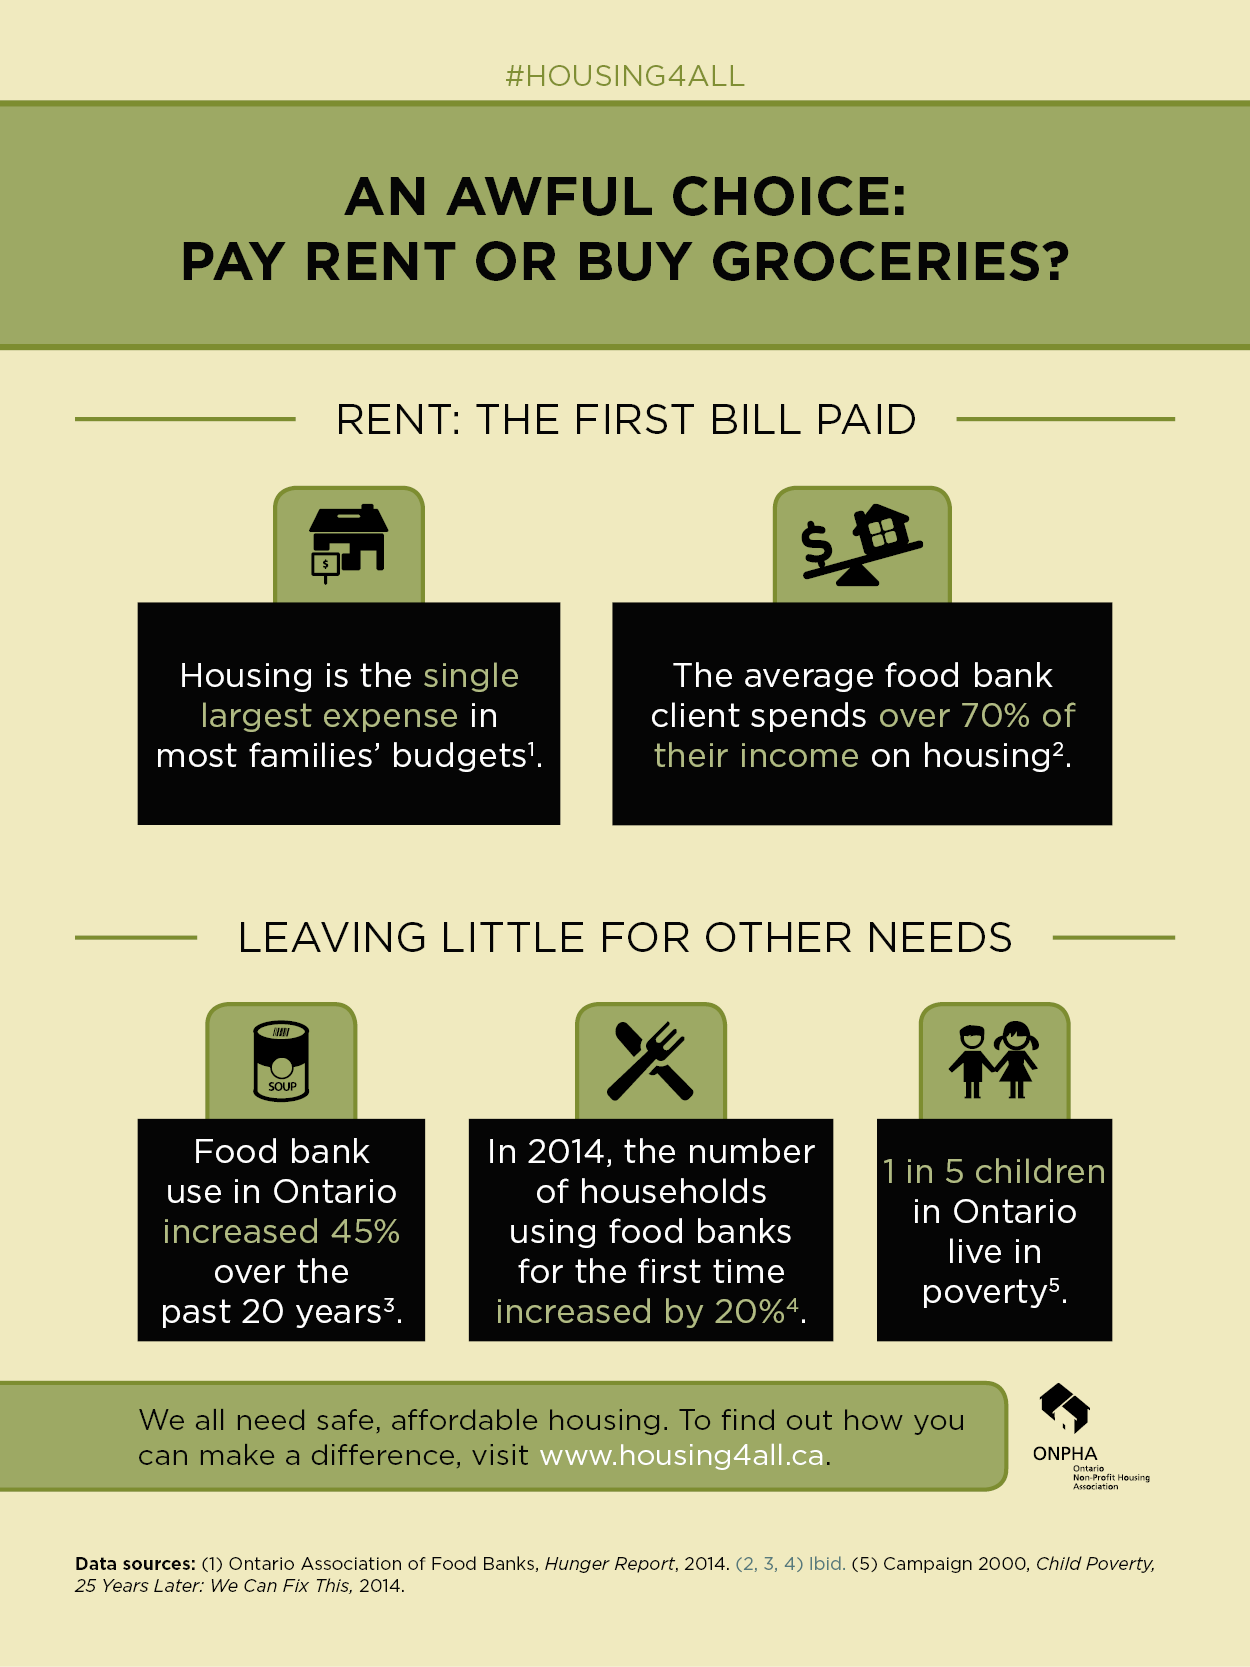 Infographic by ONPHA - An Awful Choice: Paying Rent or Buying Groceries